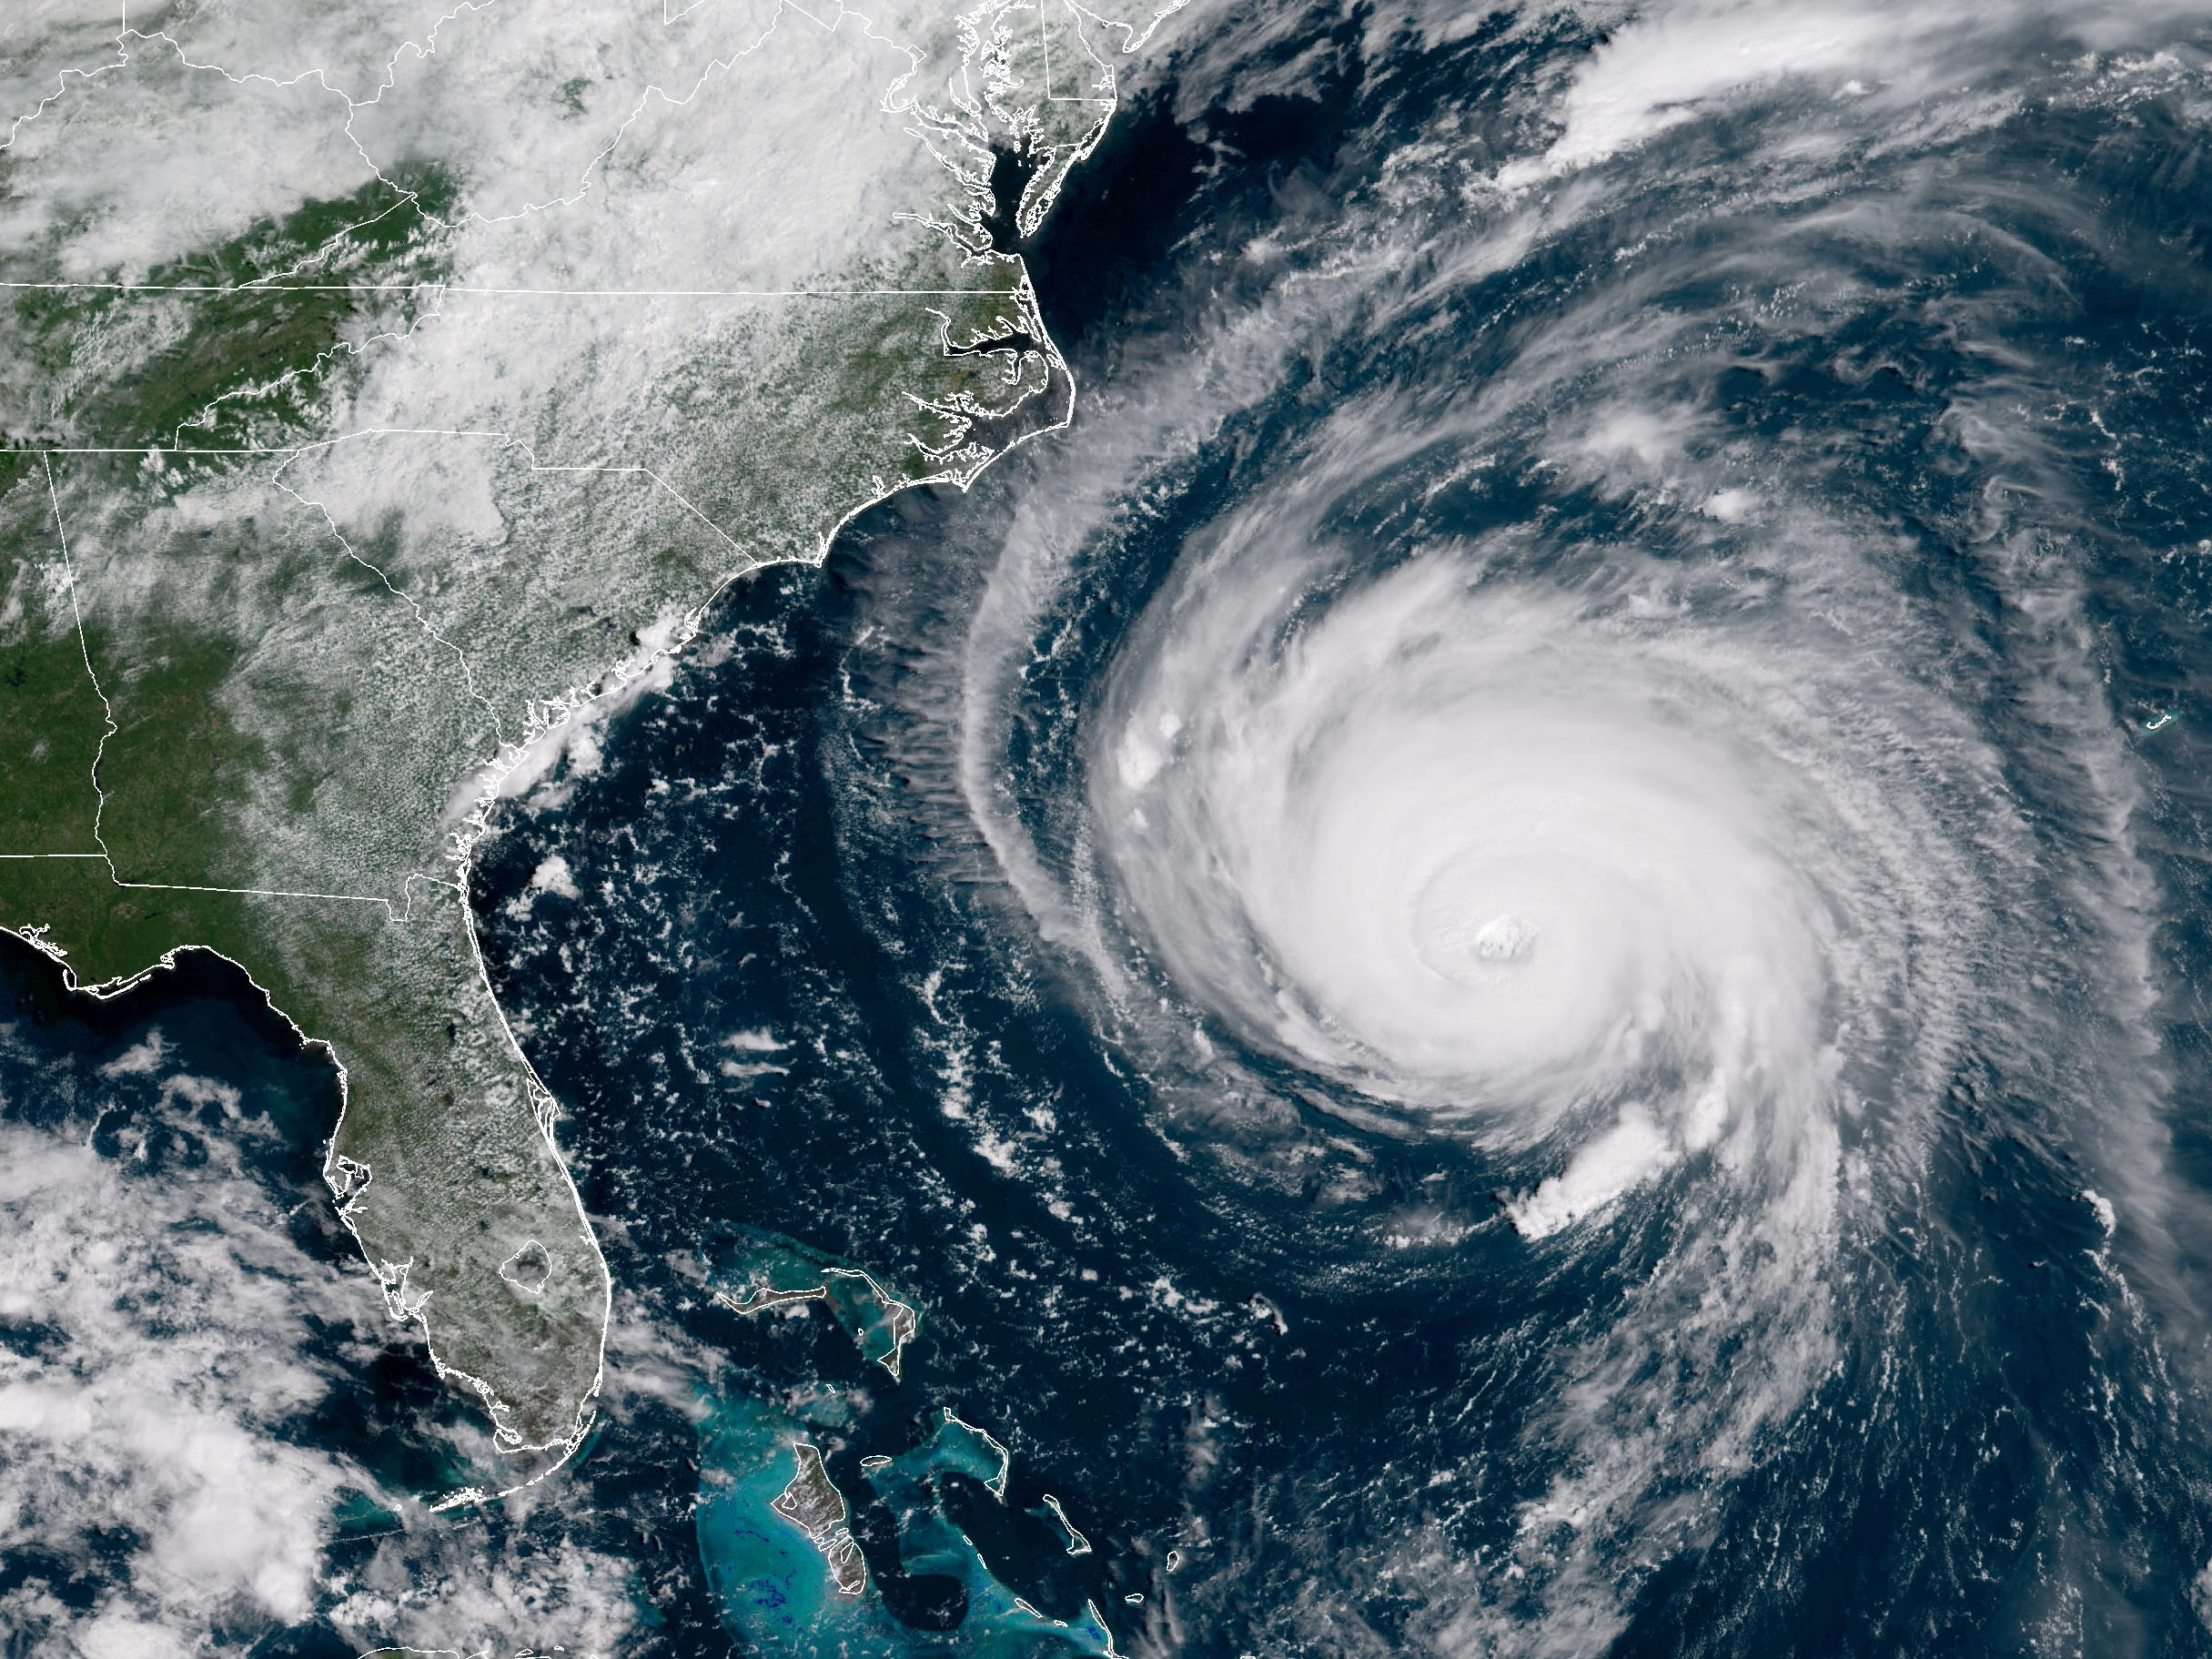 In this satellite image provided by U.S. National Oceanic and Atmospheric Administration (NOAA), Hurricane Florence churns through the Atlantic Ocean toward the U.S. East Coast on September 12, 2018. Florence slowed its approach to the U.S. today and was forecast to turn south, stalling along the  North Carolina and South Carolina coast and bringing with it torrential rain, high winds and a dangerous storm surge tomorrow through Saturday.